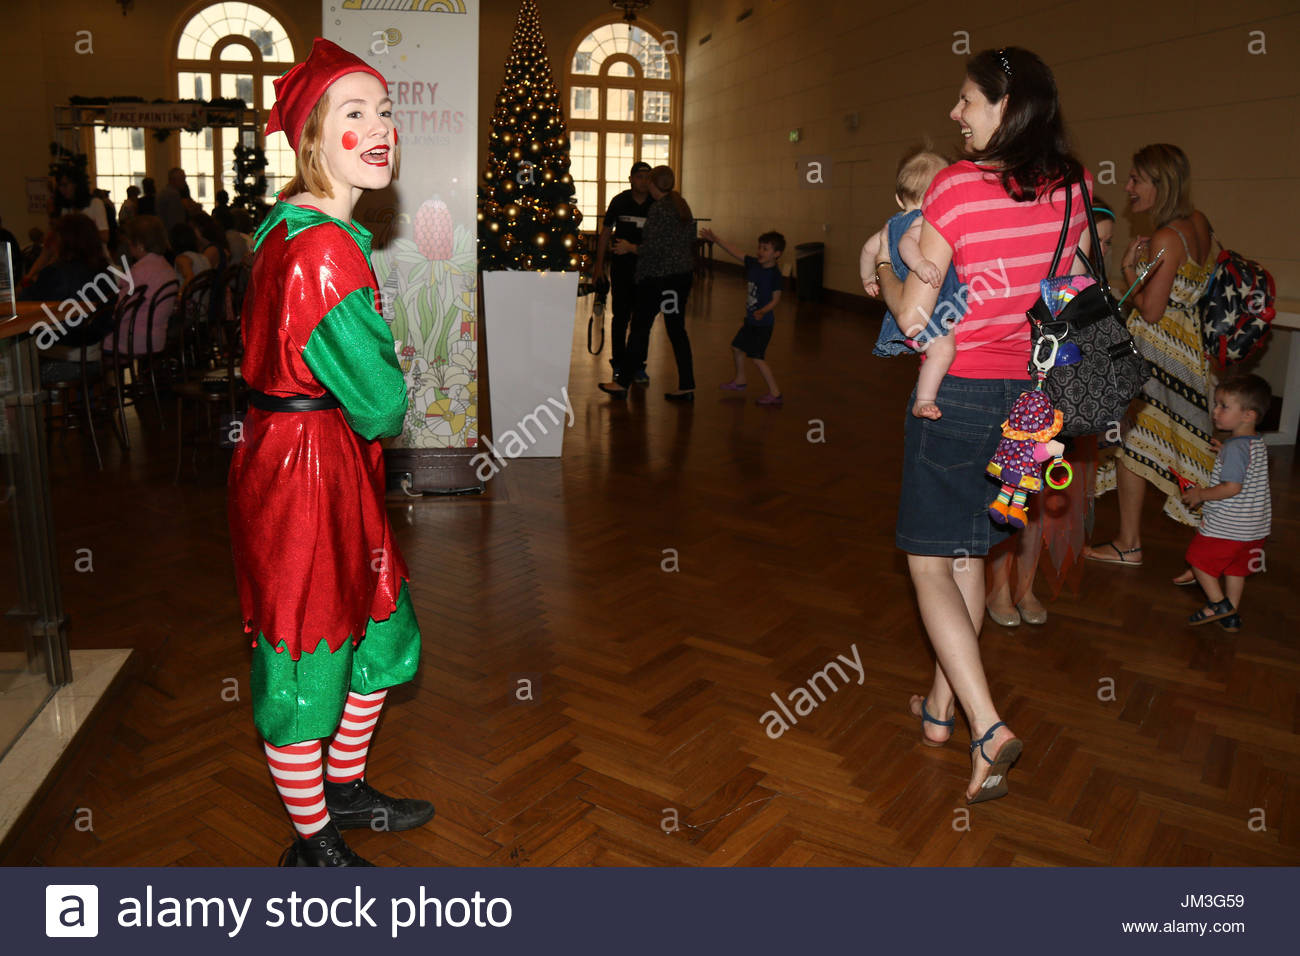 0f0665791 children arrive for the David Jones Christmas pantomime. David Jones  brought the magic of Christmas to children with their pantomime on level 7  at the ...